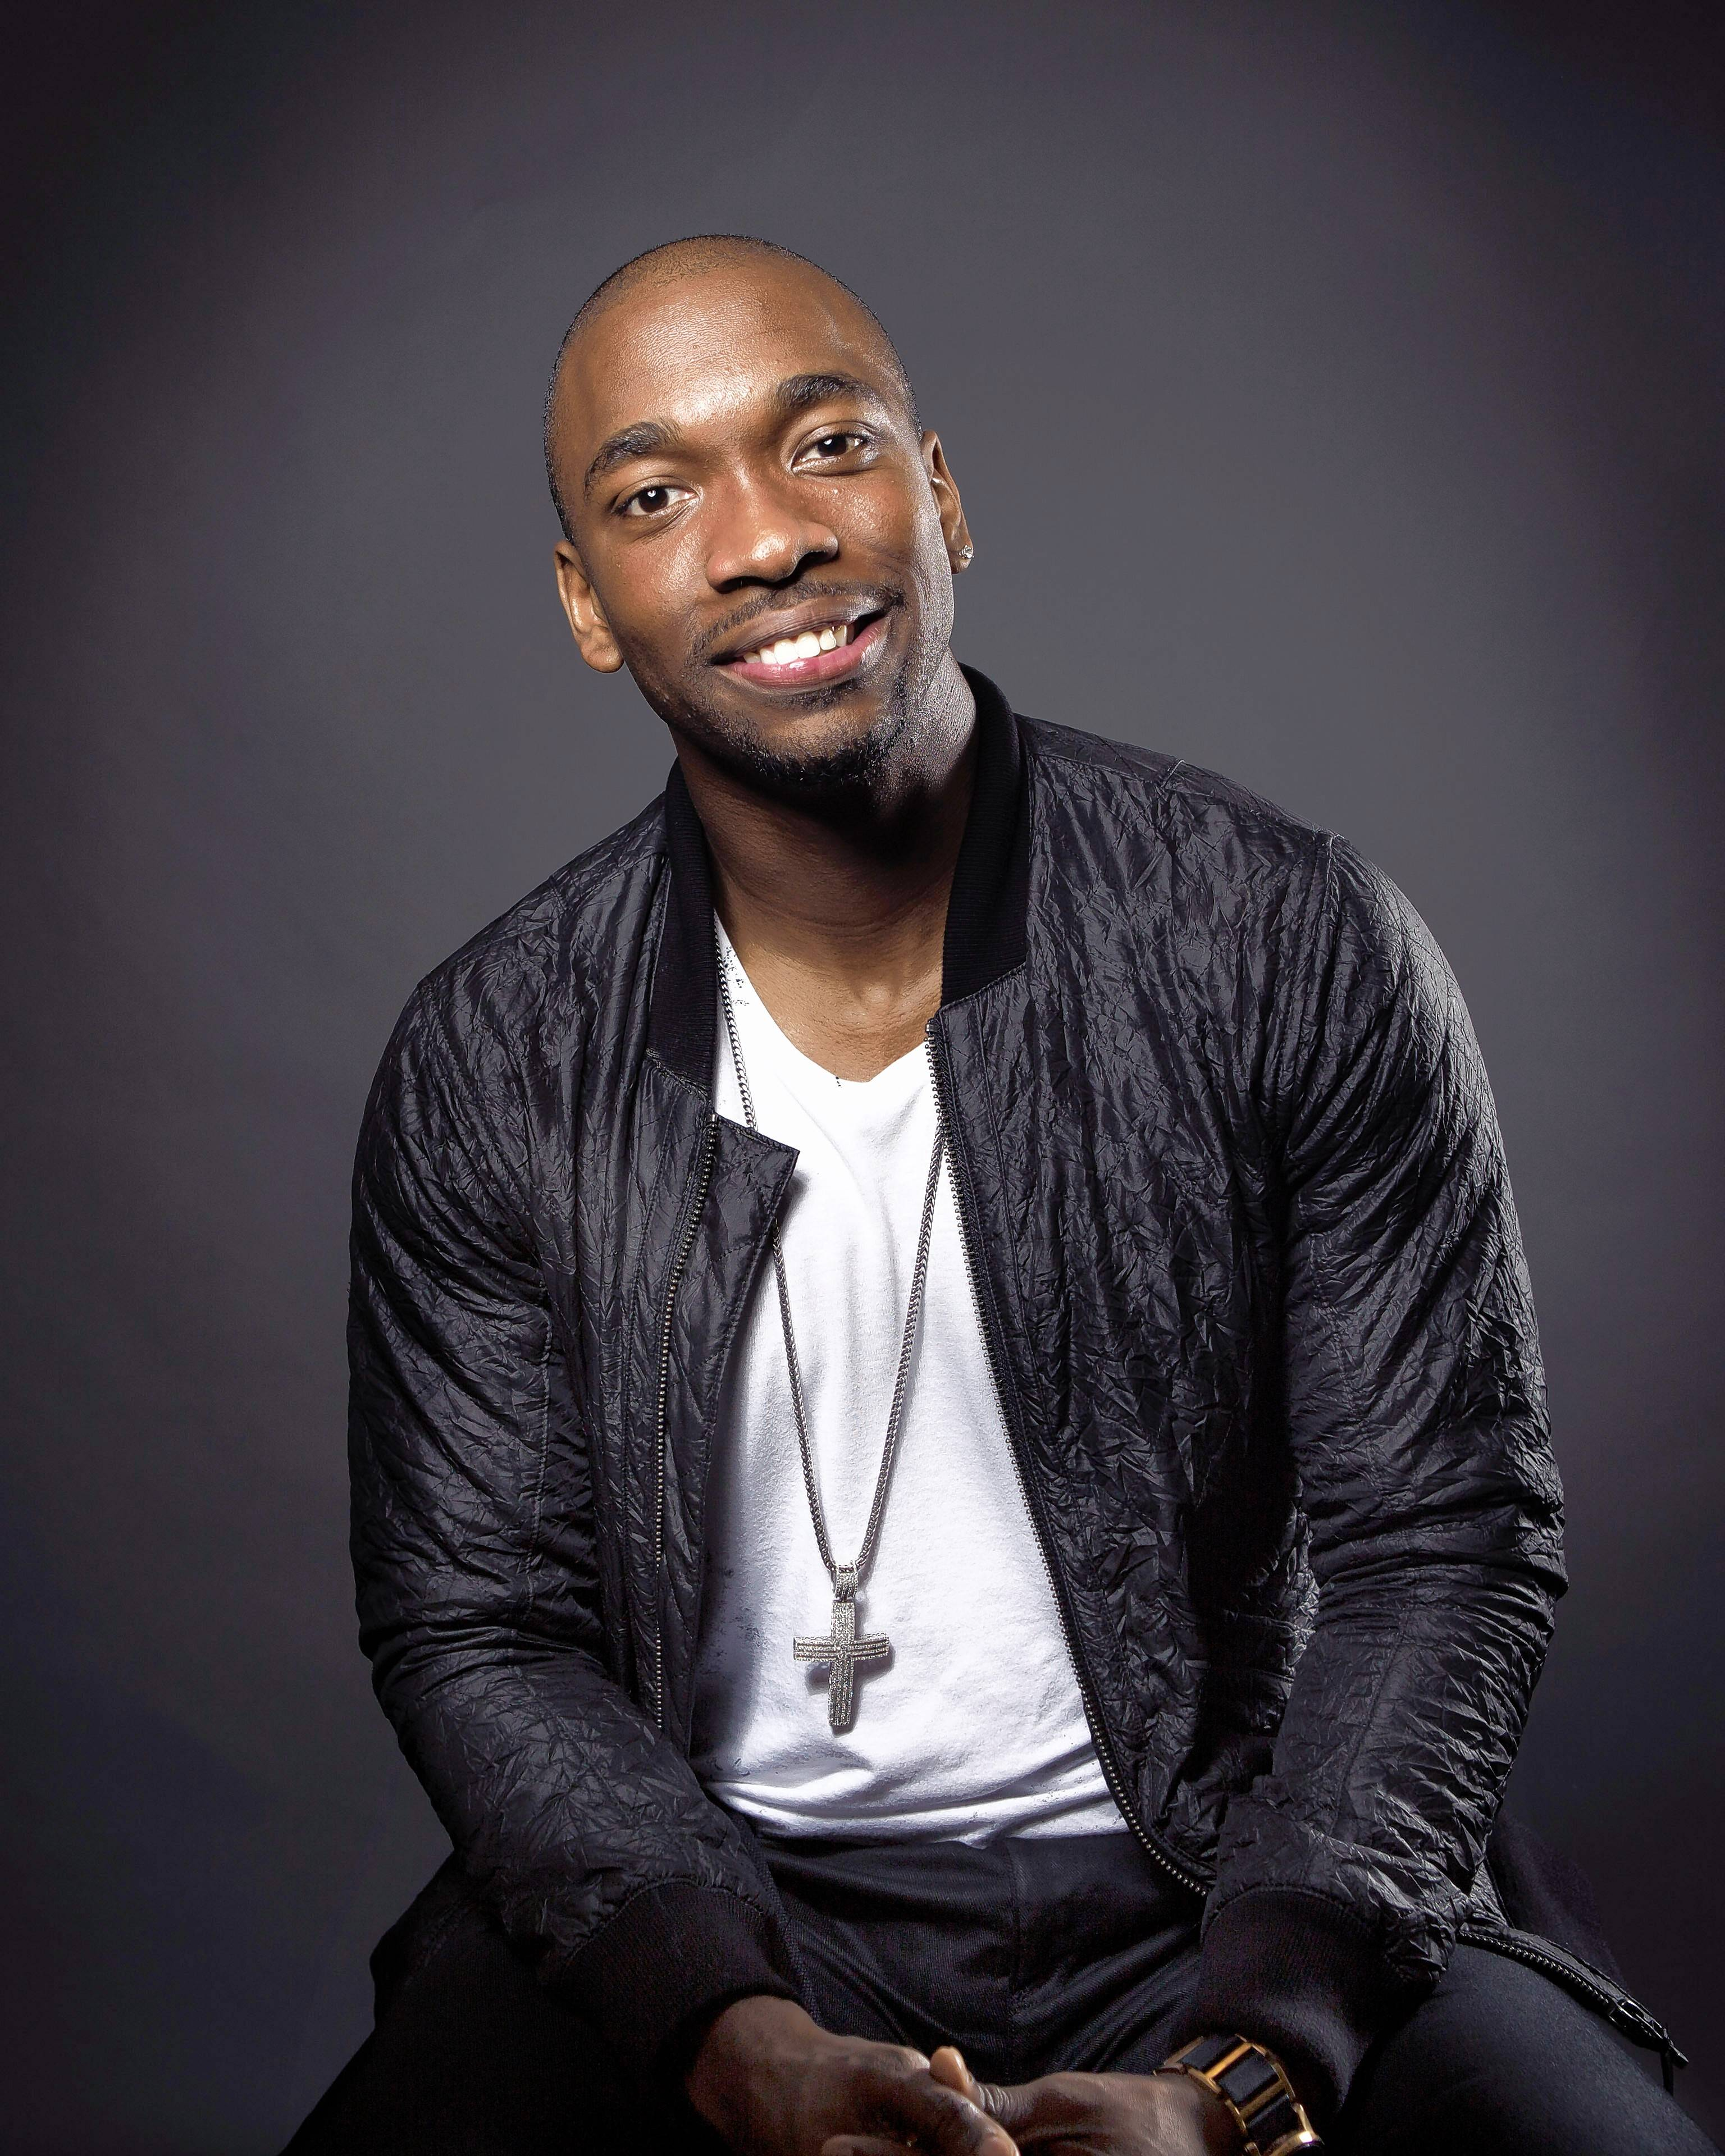 Jay Pharoah performs at Rosemont's Zanies this weekend.